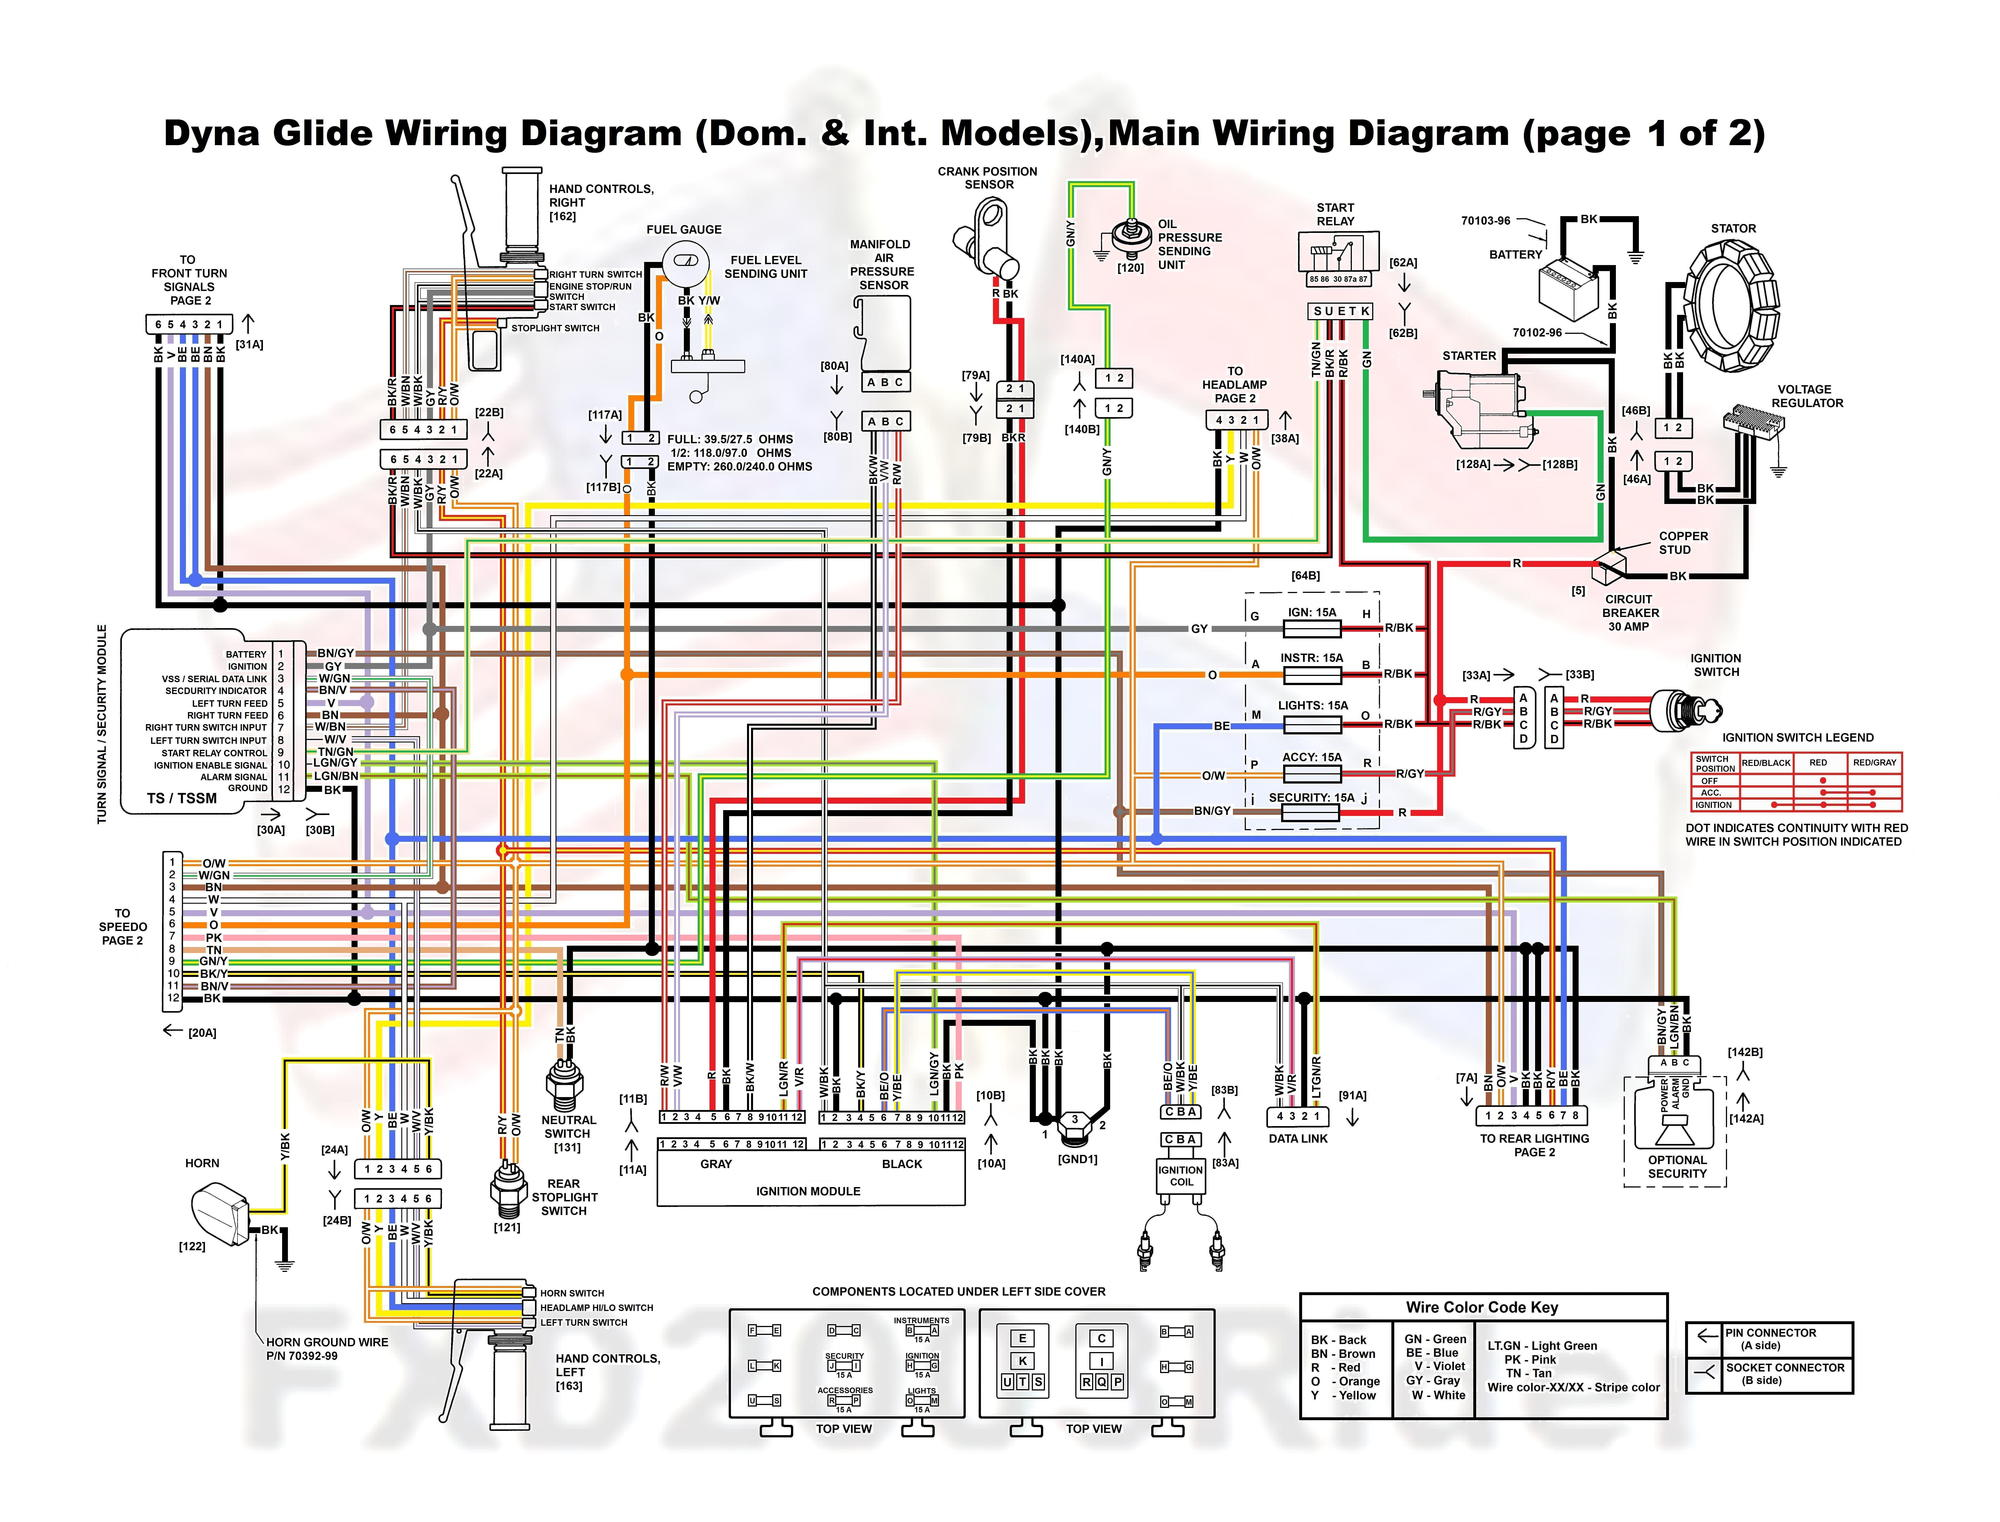 1990 Mazda Mx 6 Radio Wiring together with Xbox 360 Parts Free Download Wiring Diagrams Pictures likewise Pepsi Vending Machine Wiring Diagram besides Wiring Diagram Template Adobe Illustrator in addition Ka24de Engine Wiring Harness Free Download Diagrams Pictures. on jb classics lab x sneaker pimps